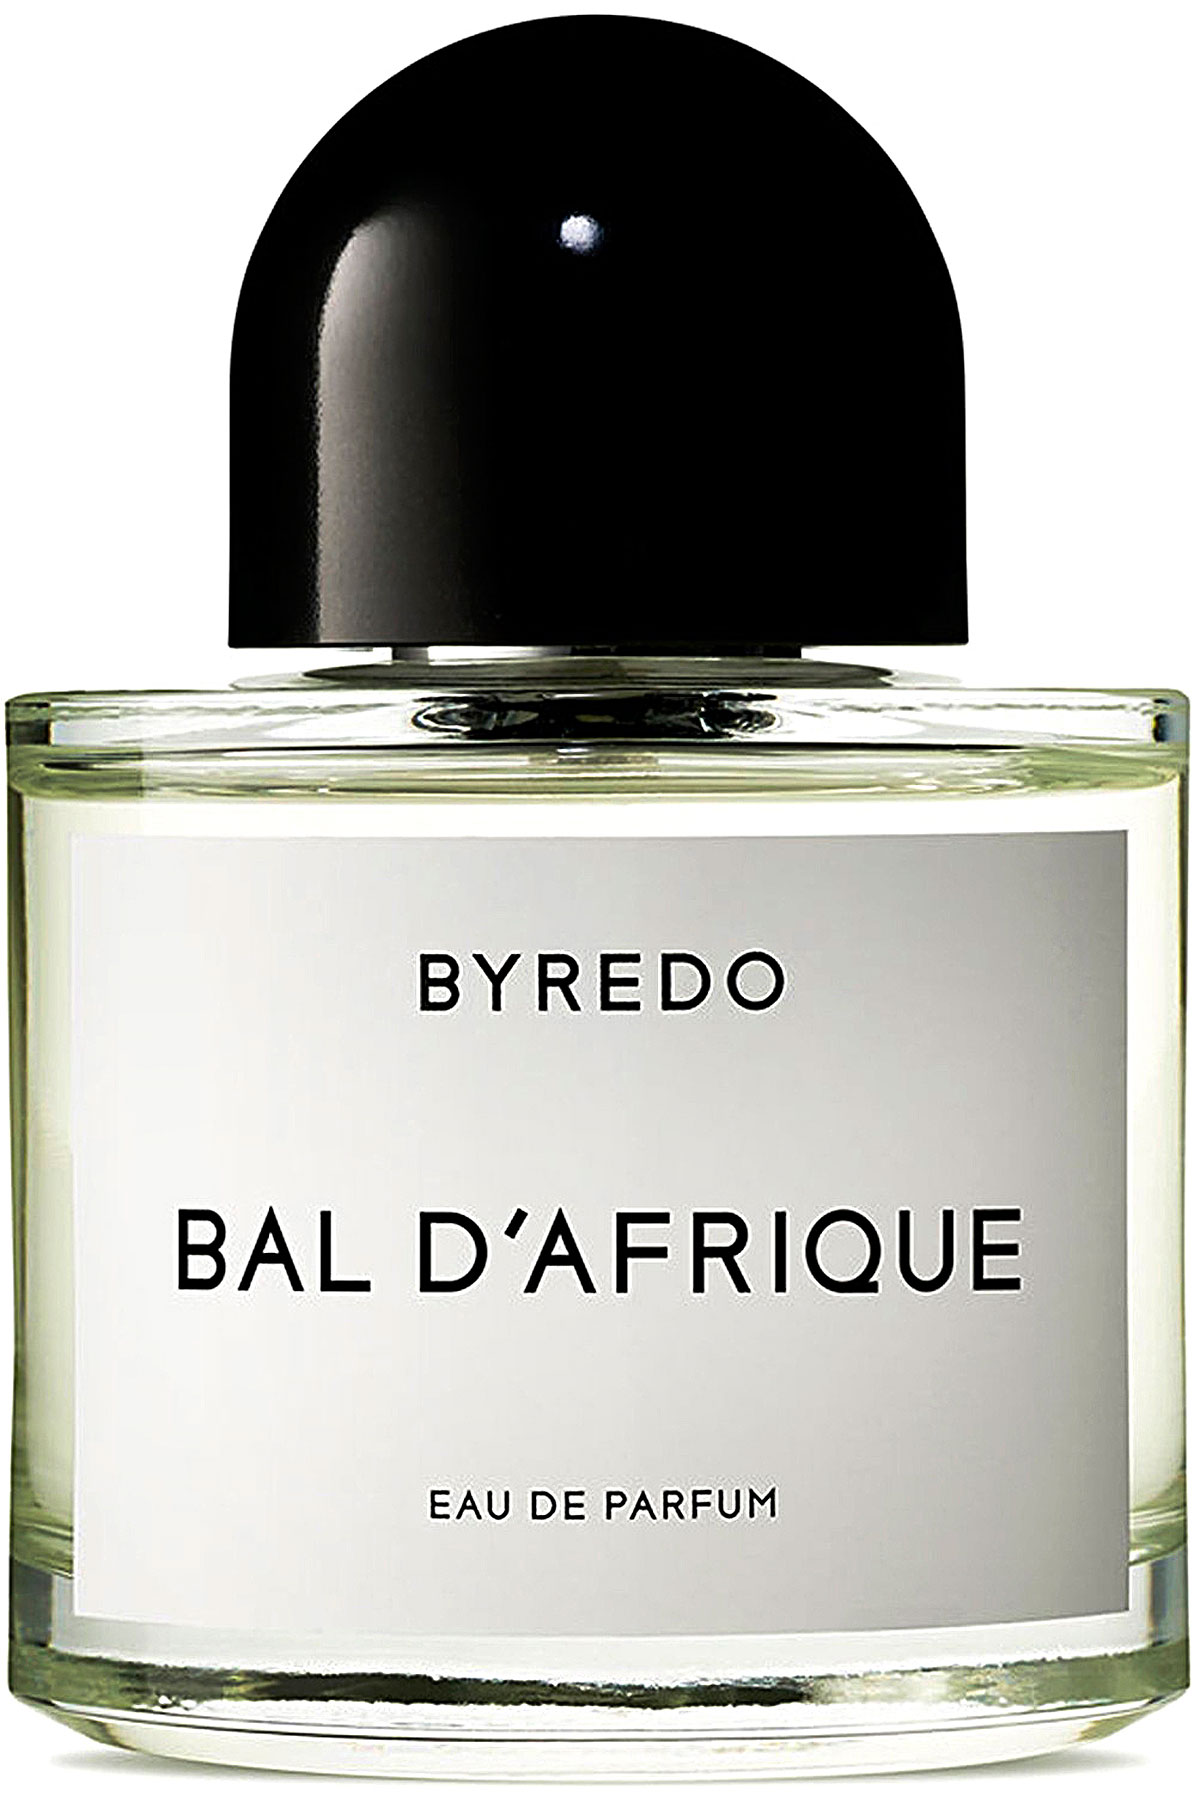 Byredo Fragrances for Women, Bal D Afrique - Eau De Parfum - 50 Ml, 2019, 50 ml